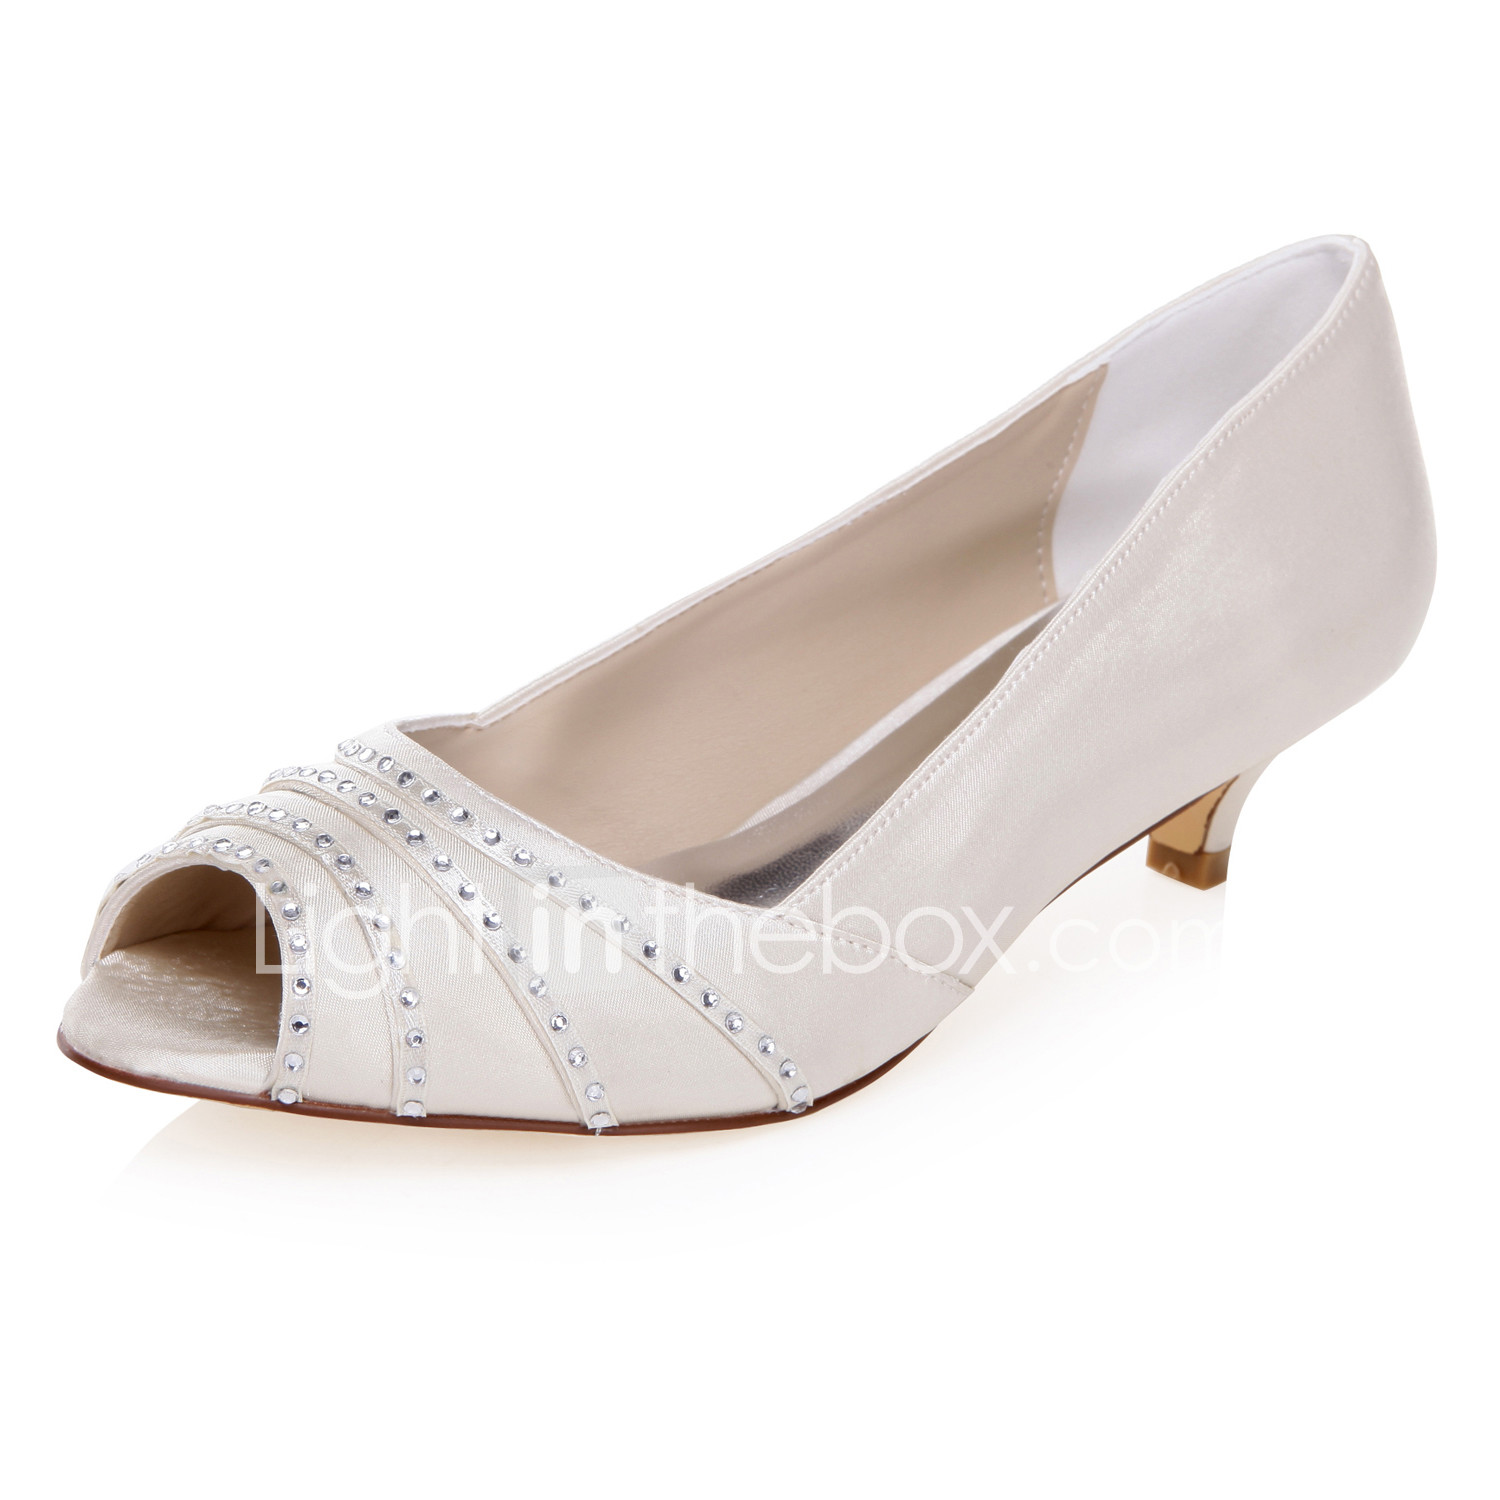 fashion where can i buy promo codes Women's Sandals Low Heel Peep Toe / Open Toe Sparkling ...